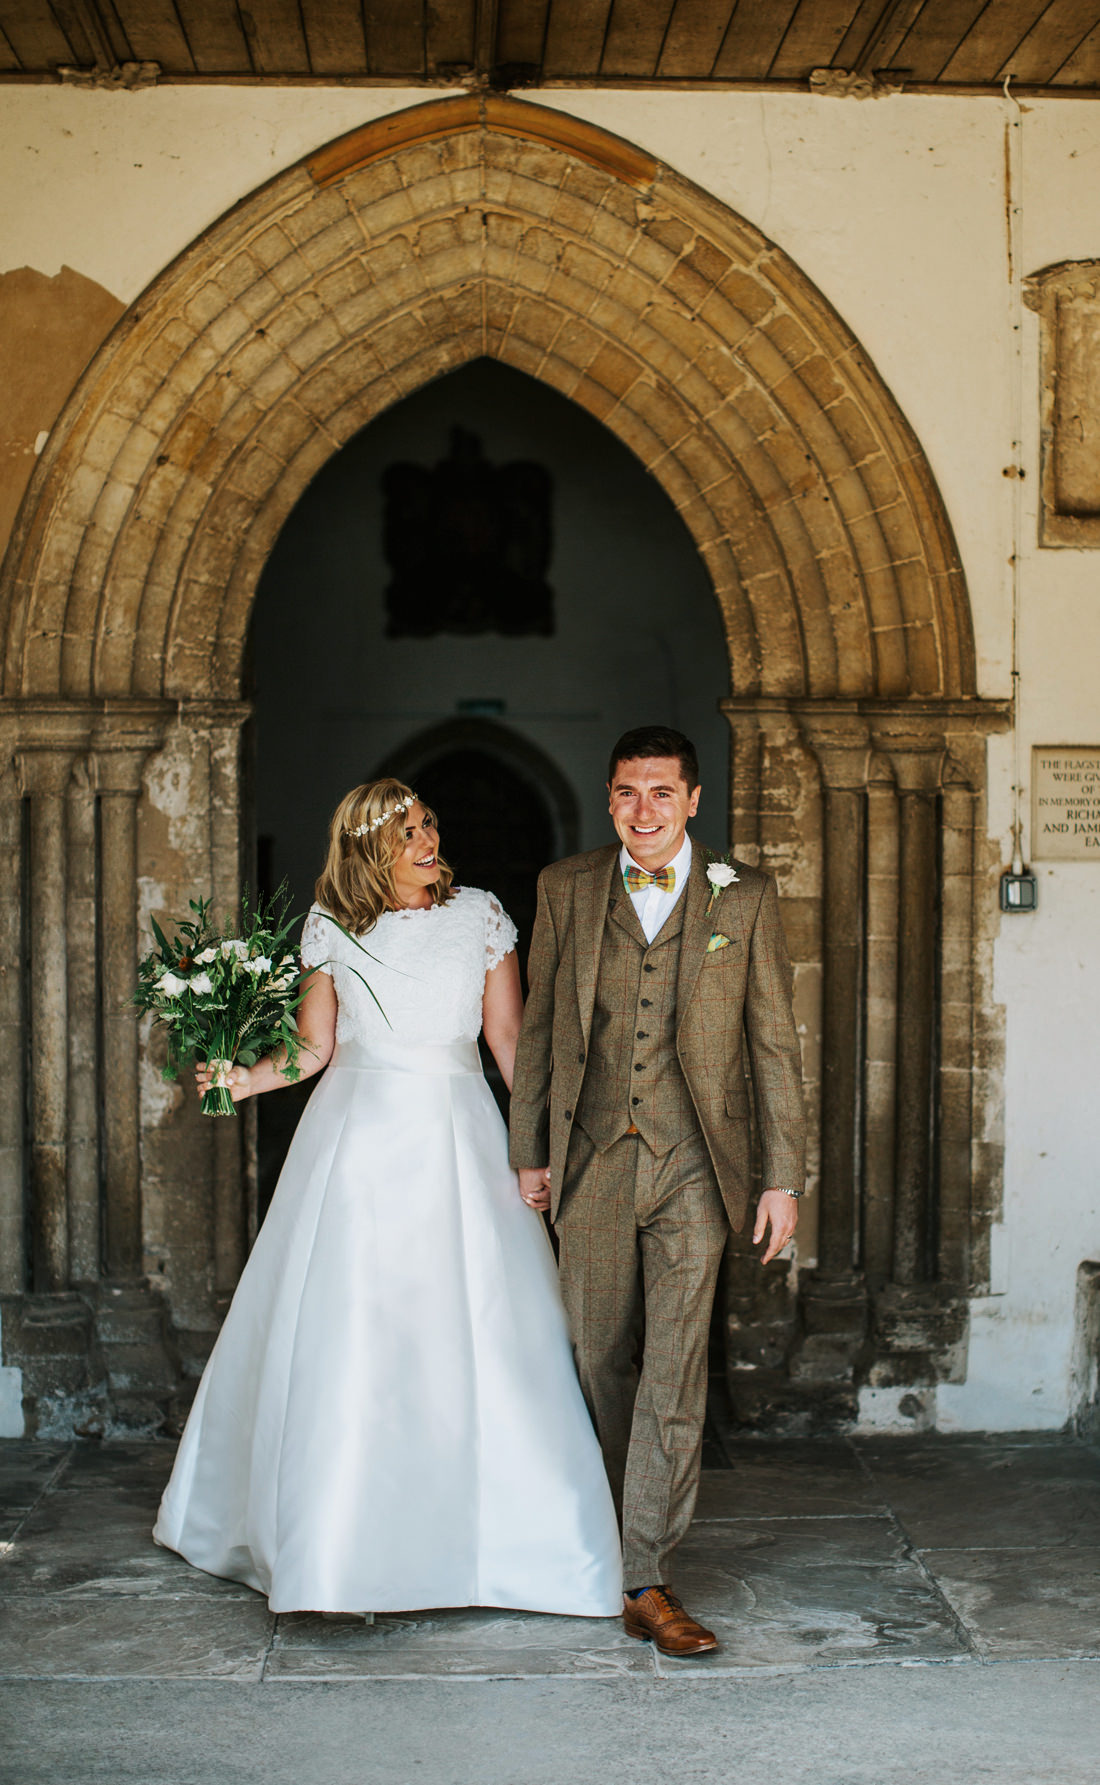 Kate & Thomas - Norfolk Wedding Photographer, UK 51